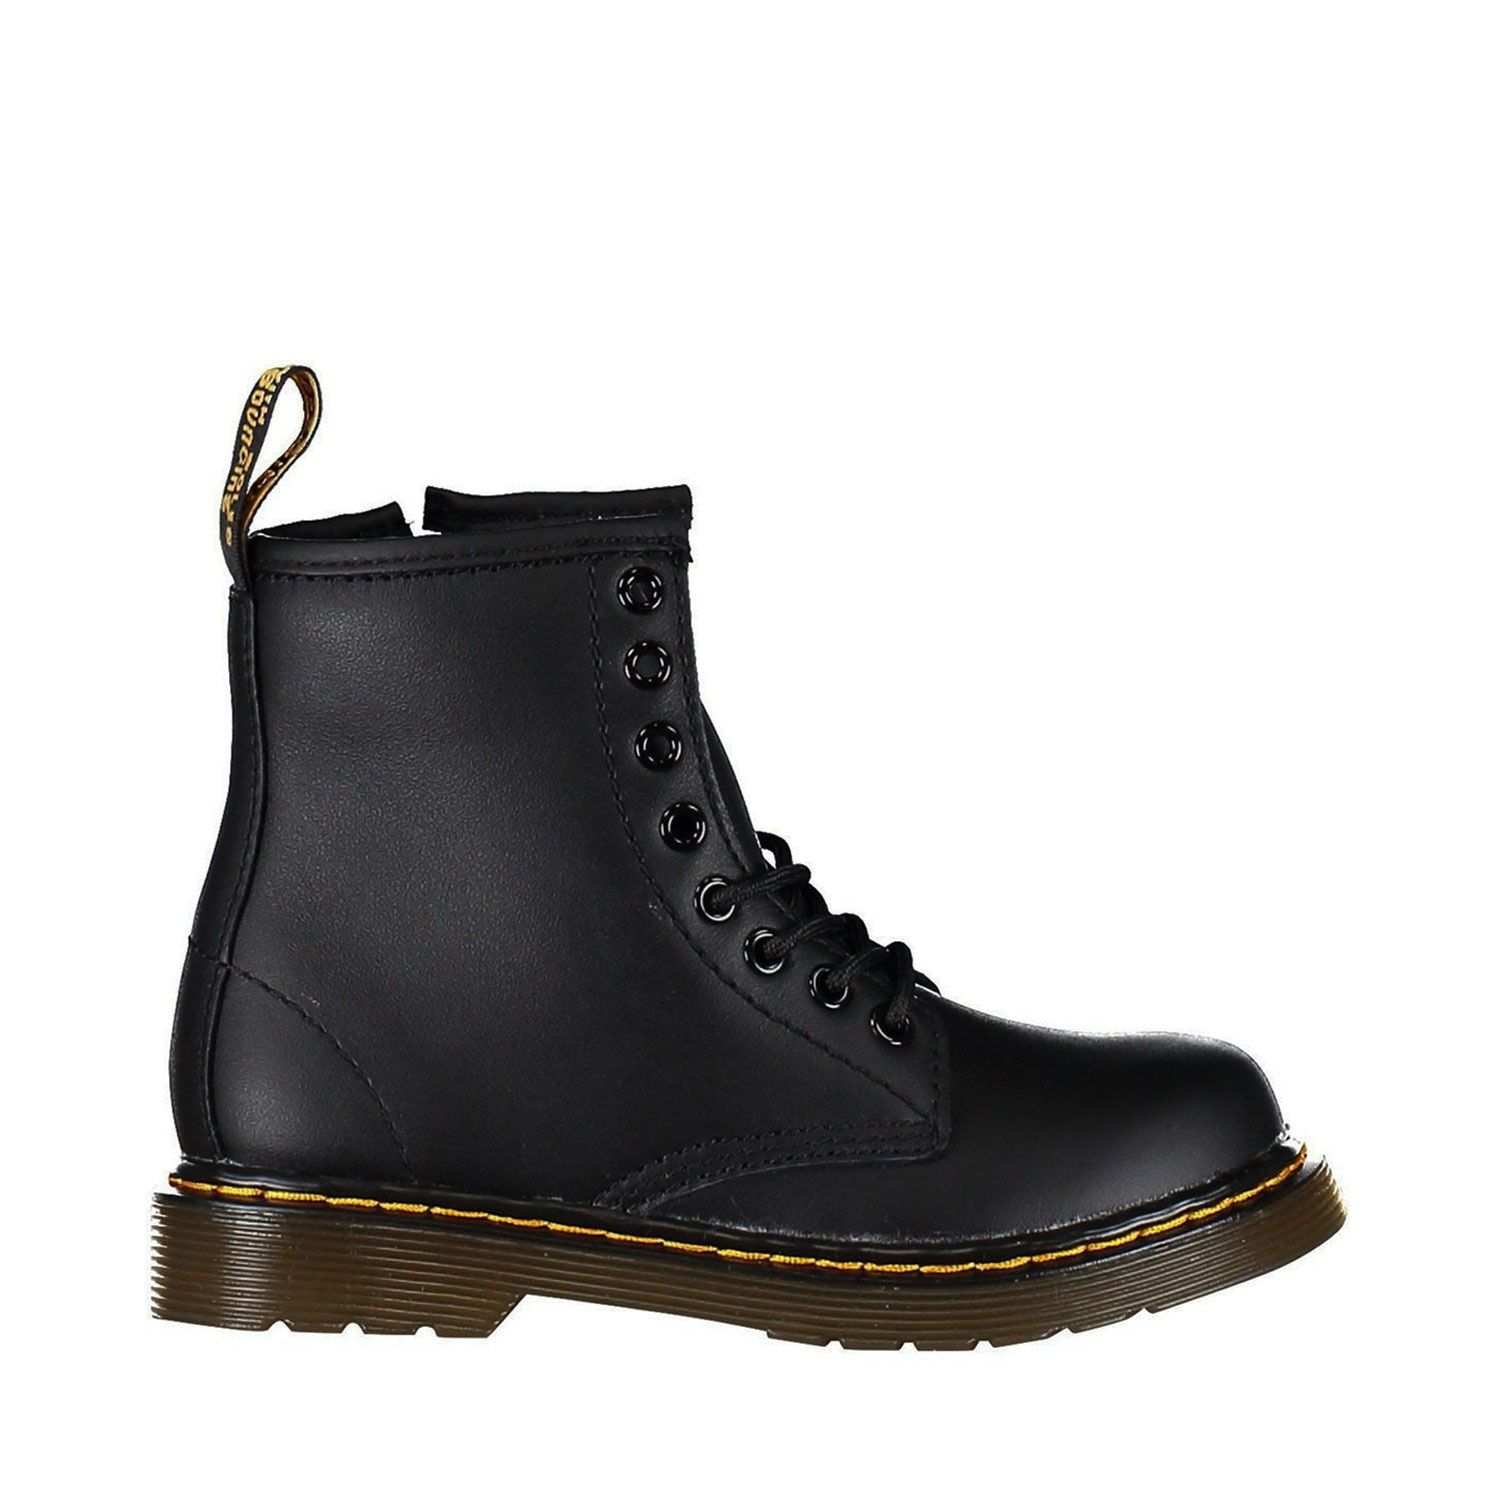 Picture of Dr. Martens 15382001 kids boots black